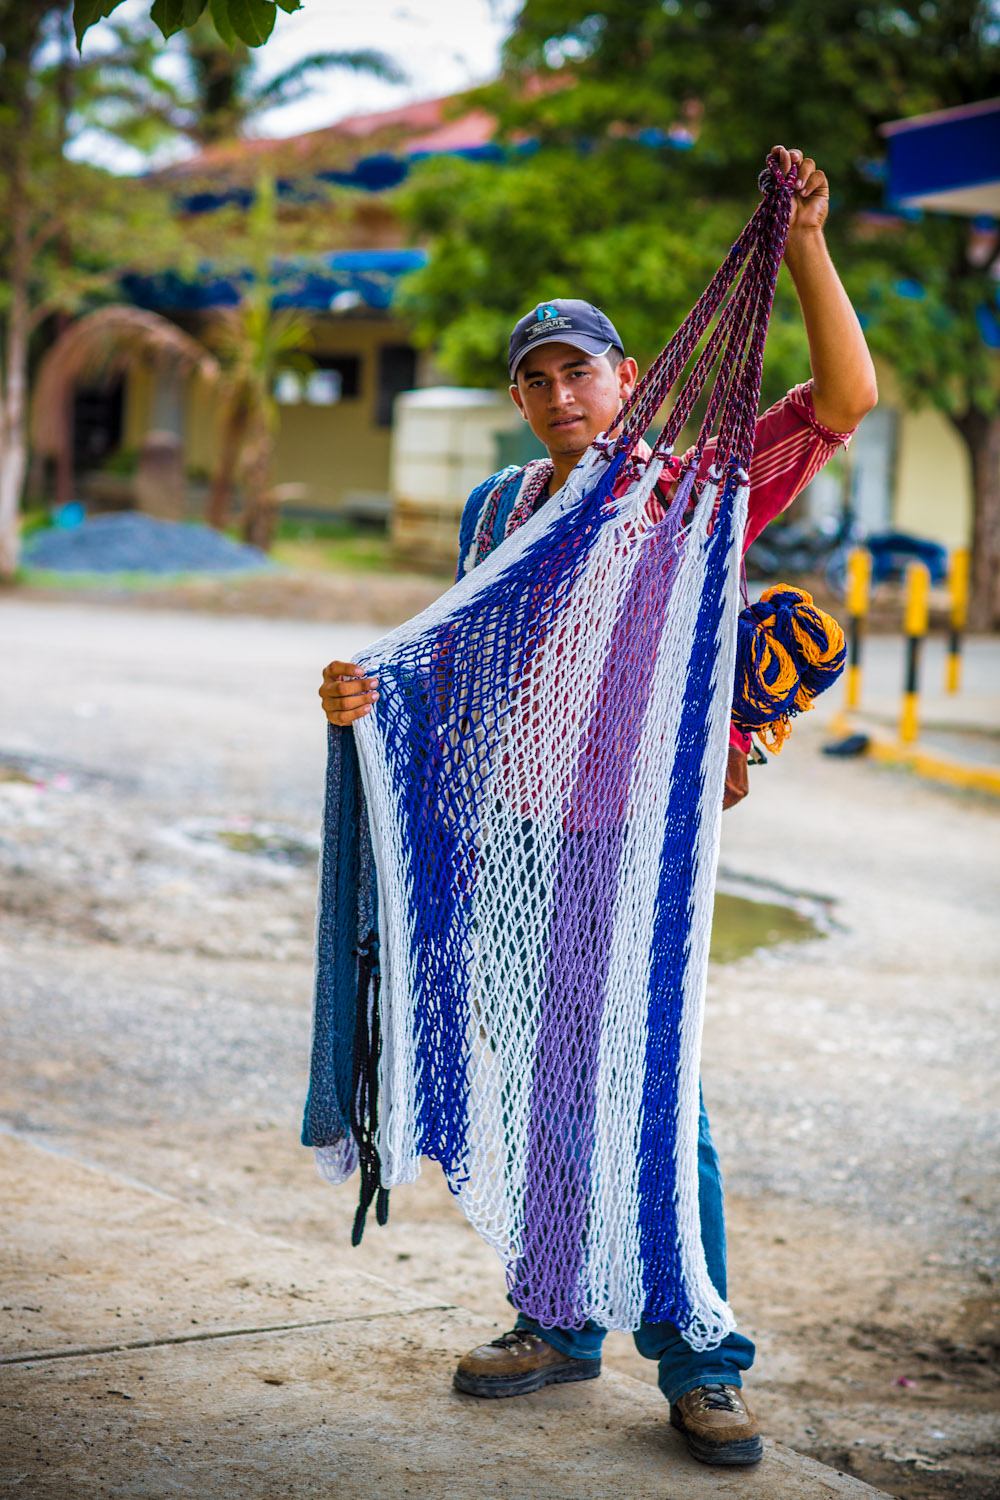 One of the hammock selling guys at the Costa Rica Nicaragua border.